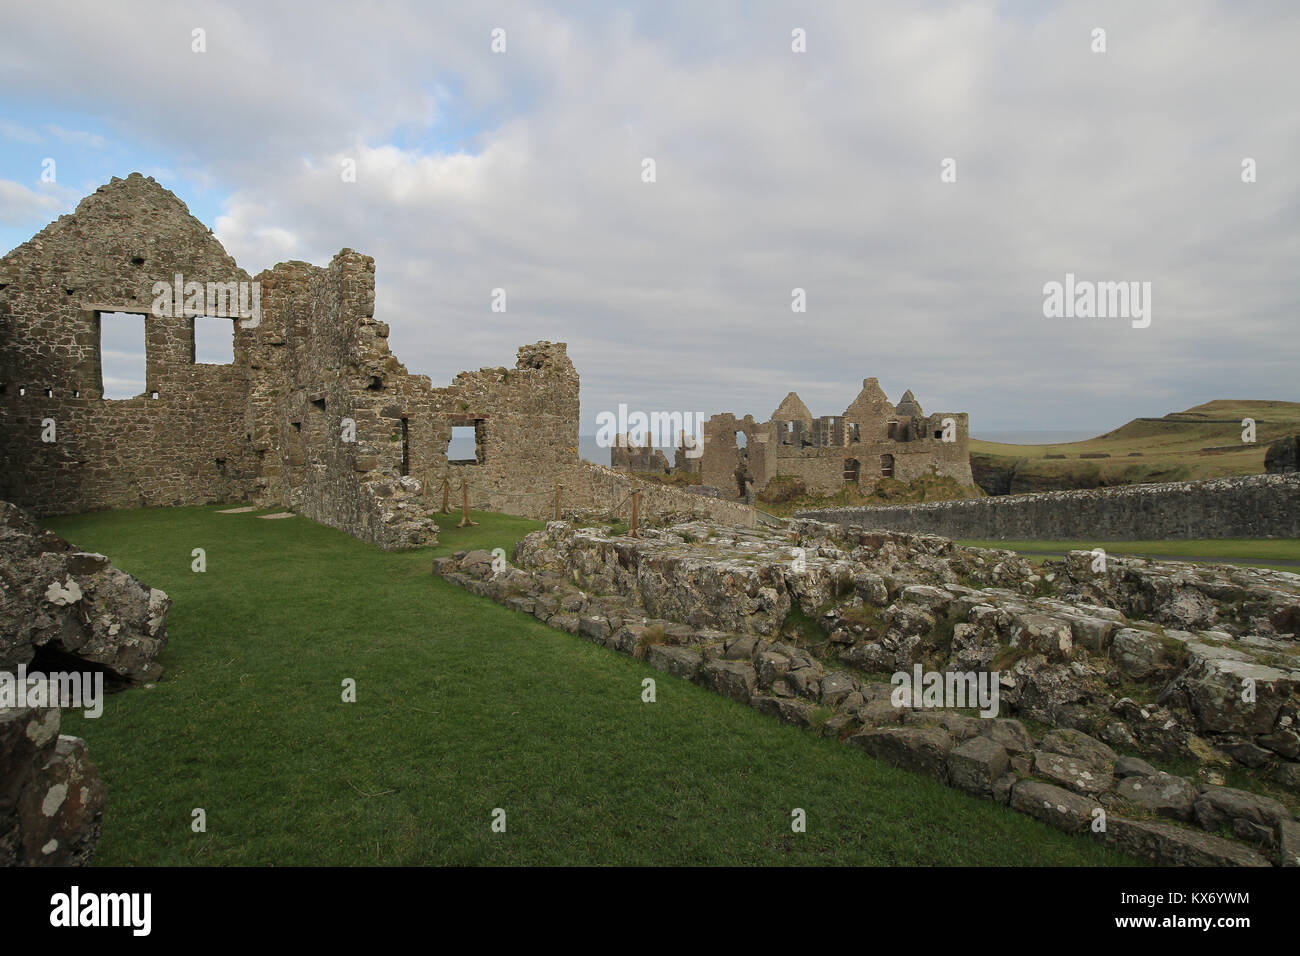 Medieval ruins of Dunluce Castle on the north coast of Northern Ireland. The castle was the location for House of - Stock Image